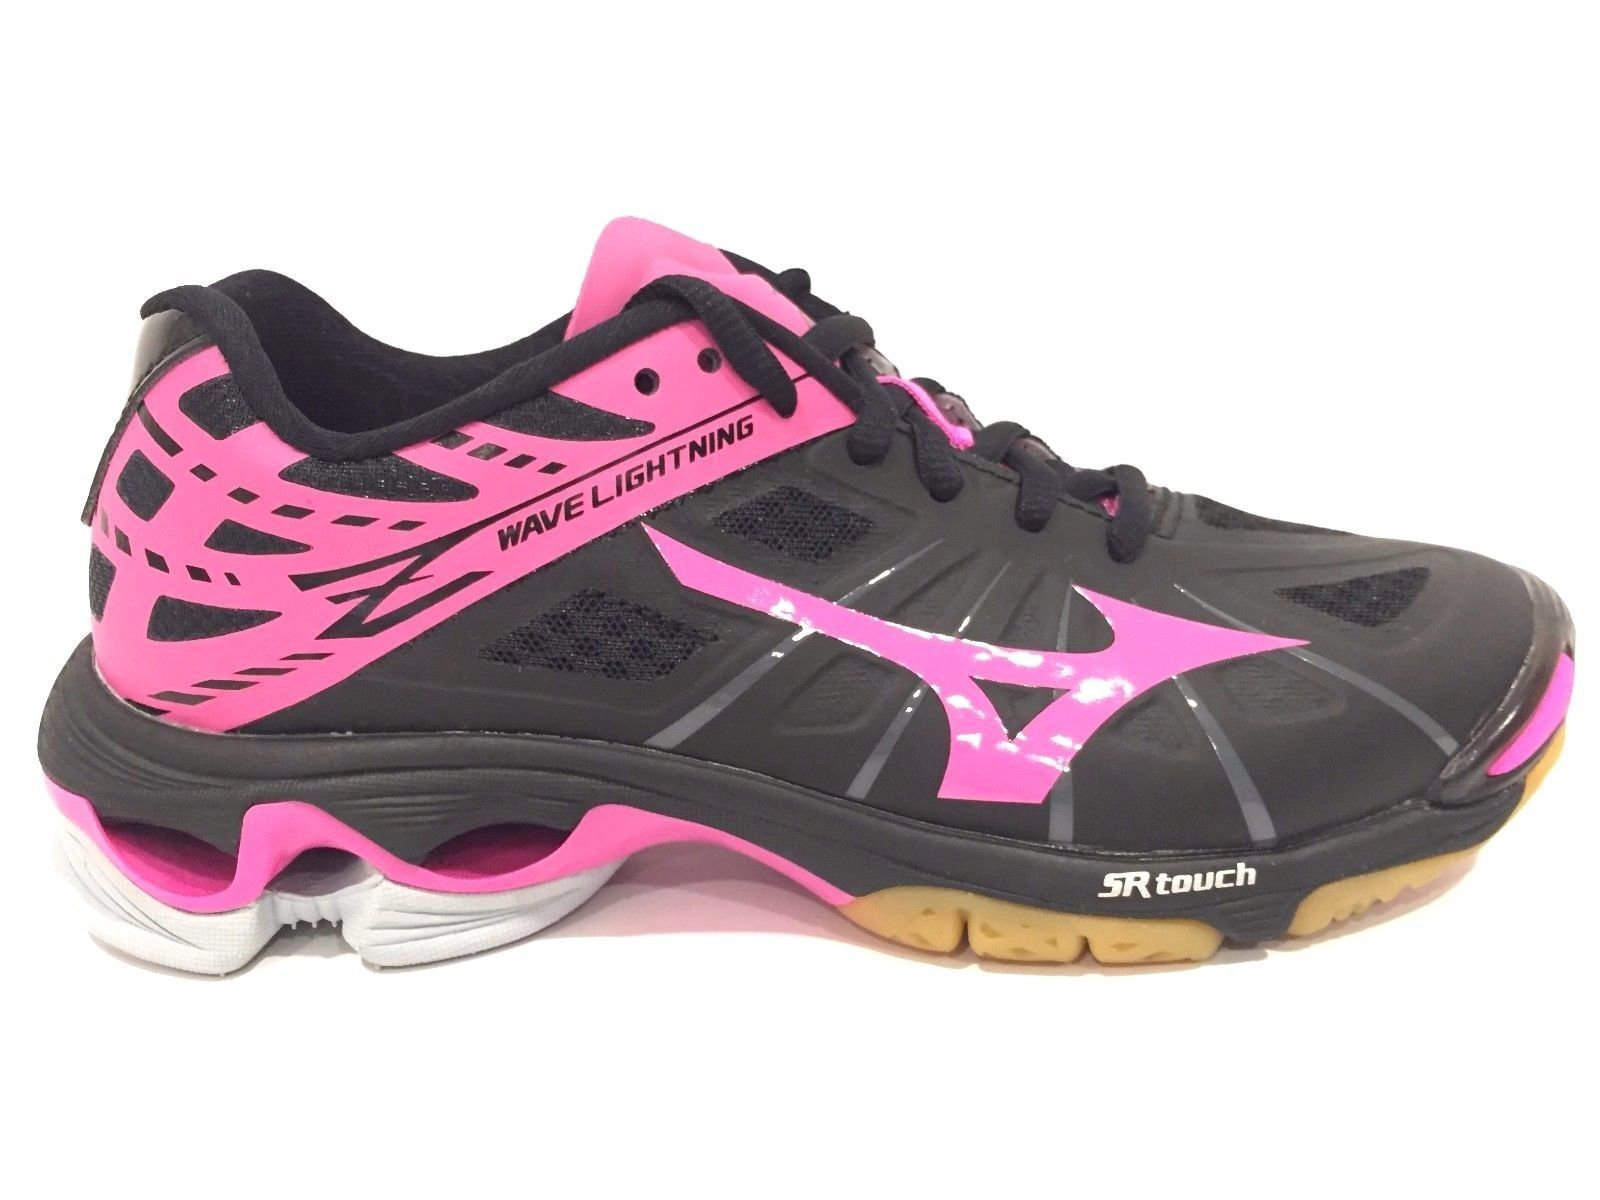 ed6a634be0476 Details about Mizuno Women's Wave Lightning Z WOMS BK-PK Volleyball ...